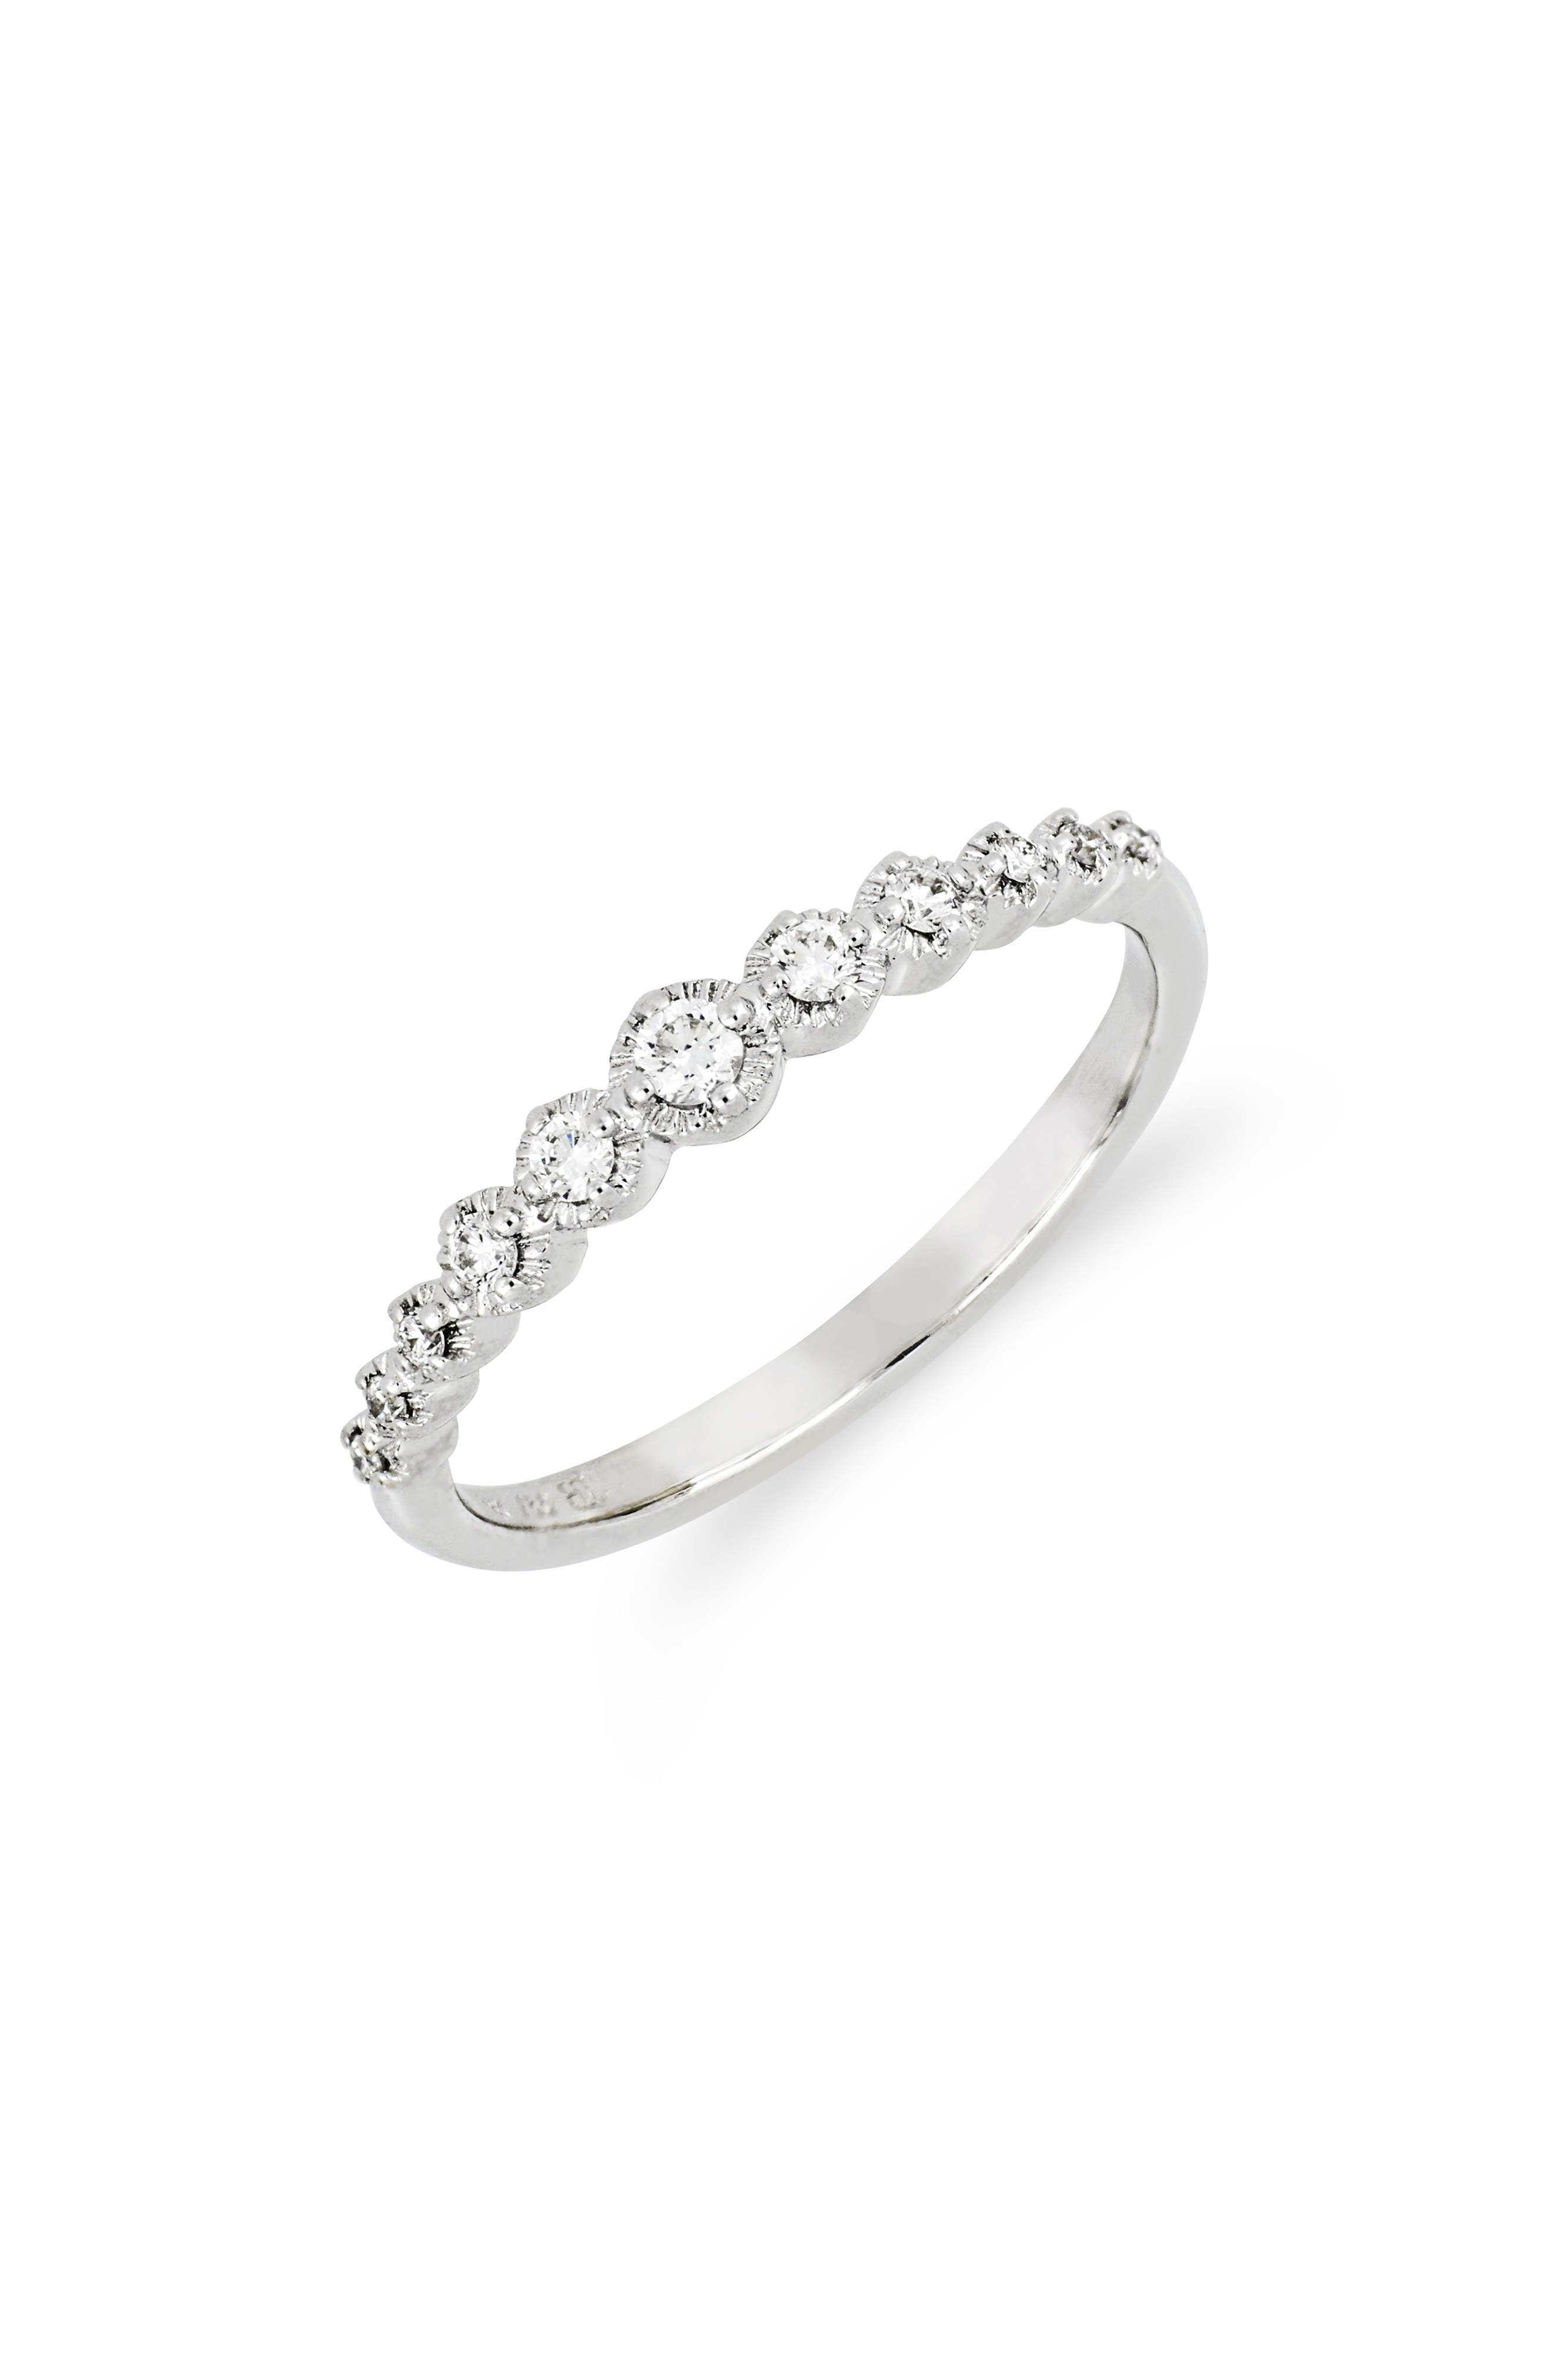 Mila Large Hammered Diamond Stack Ring,                         Main,                         color, White Gold